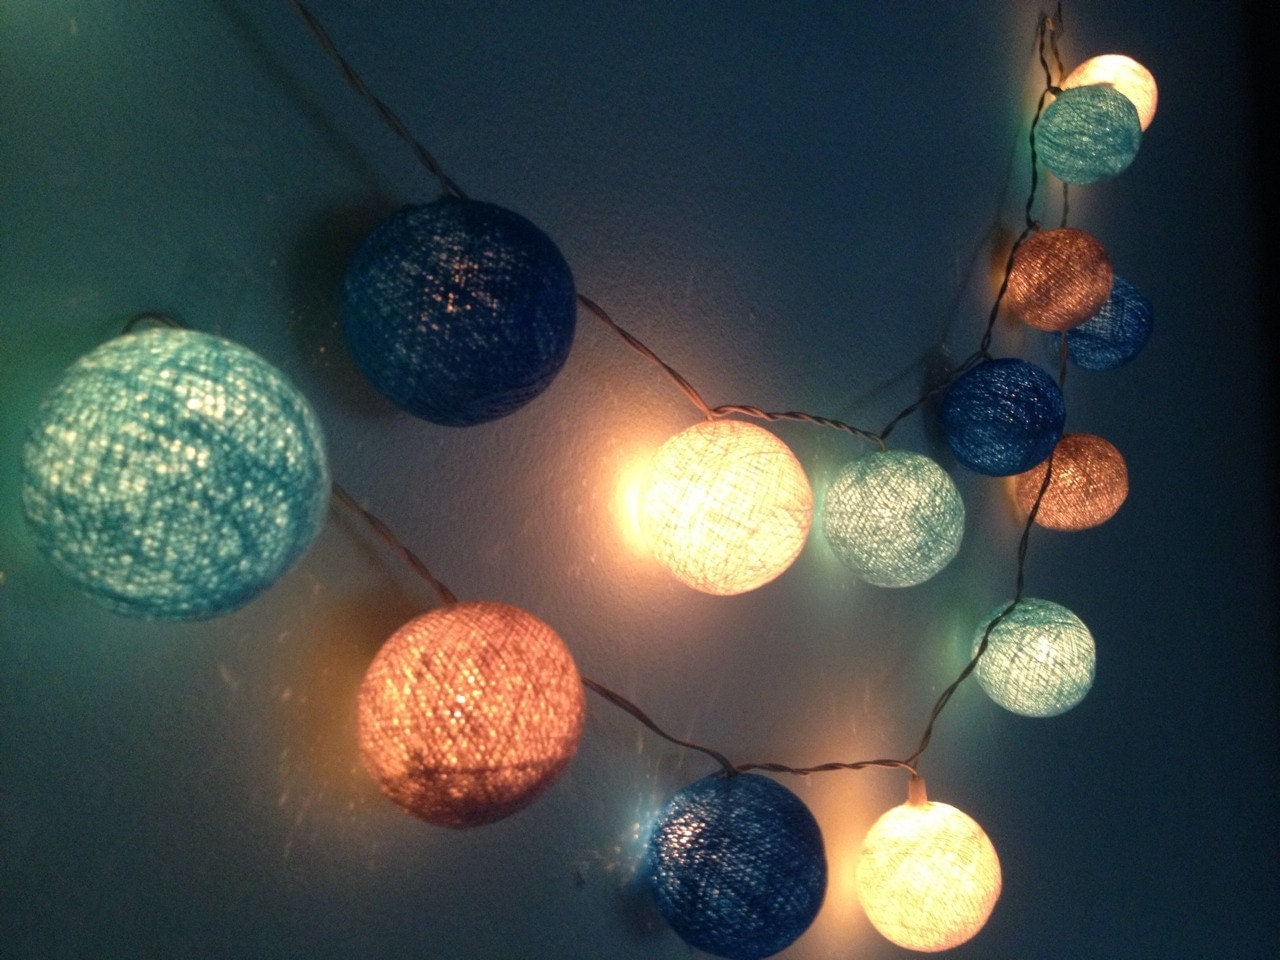 Decorating With String Lights Indoors : Cotton ball lights for home decorparty by Icandylighting on Etsy